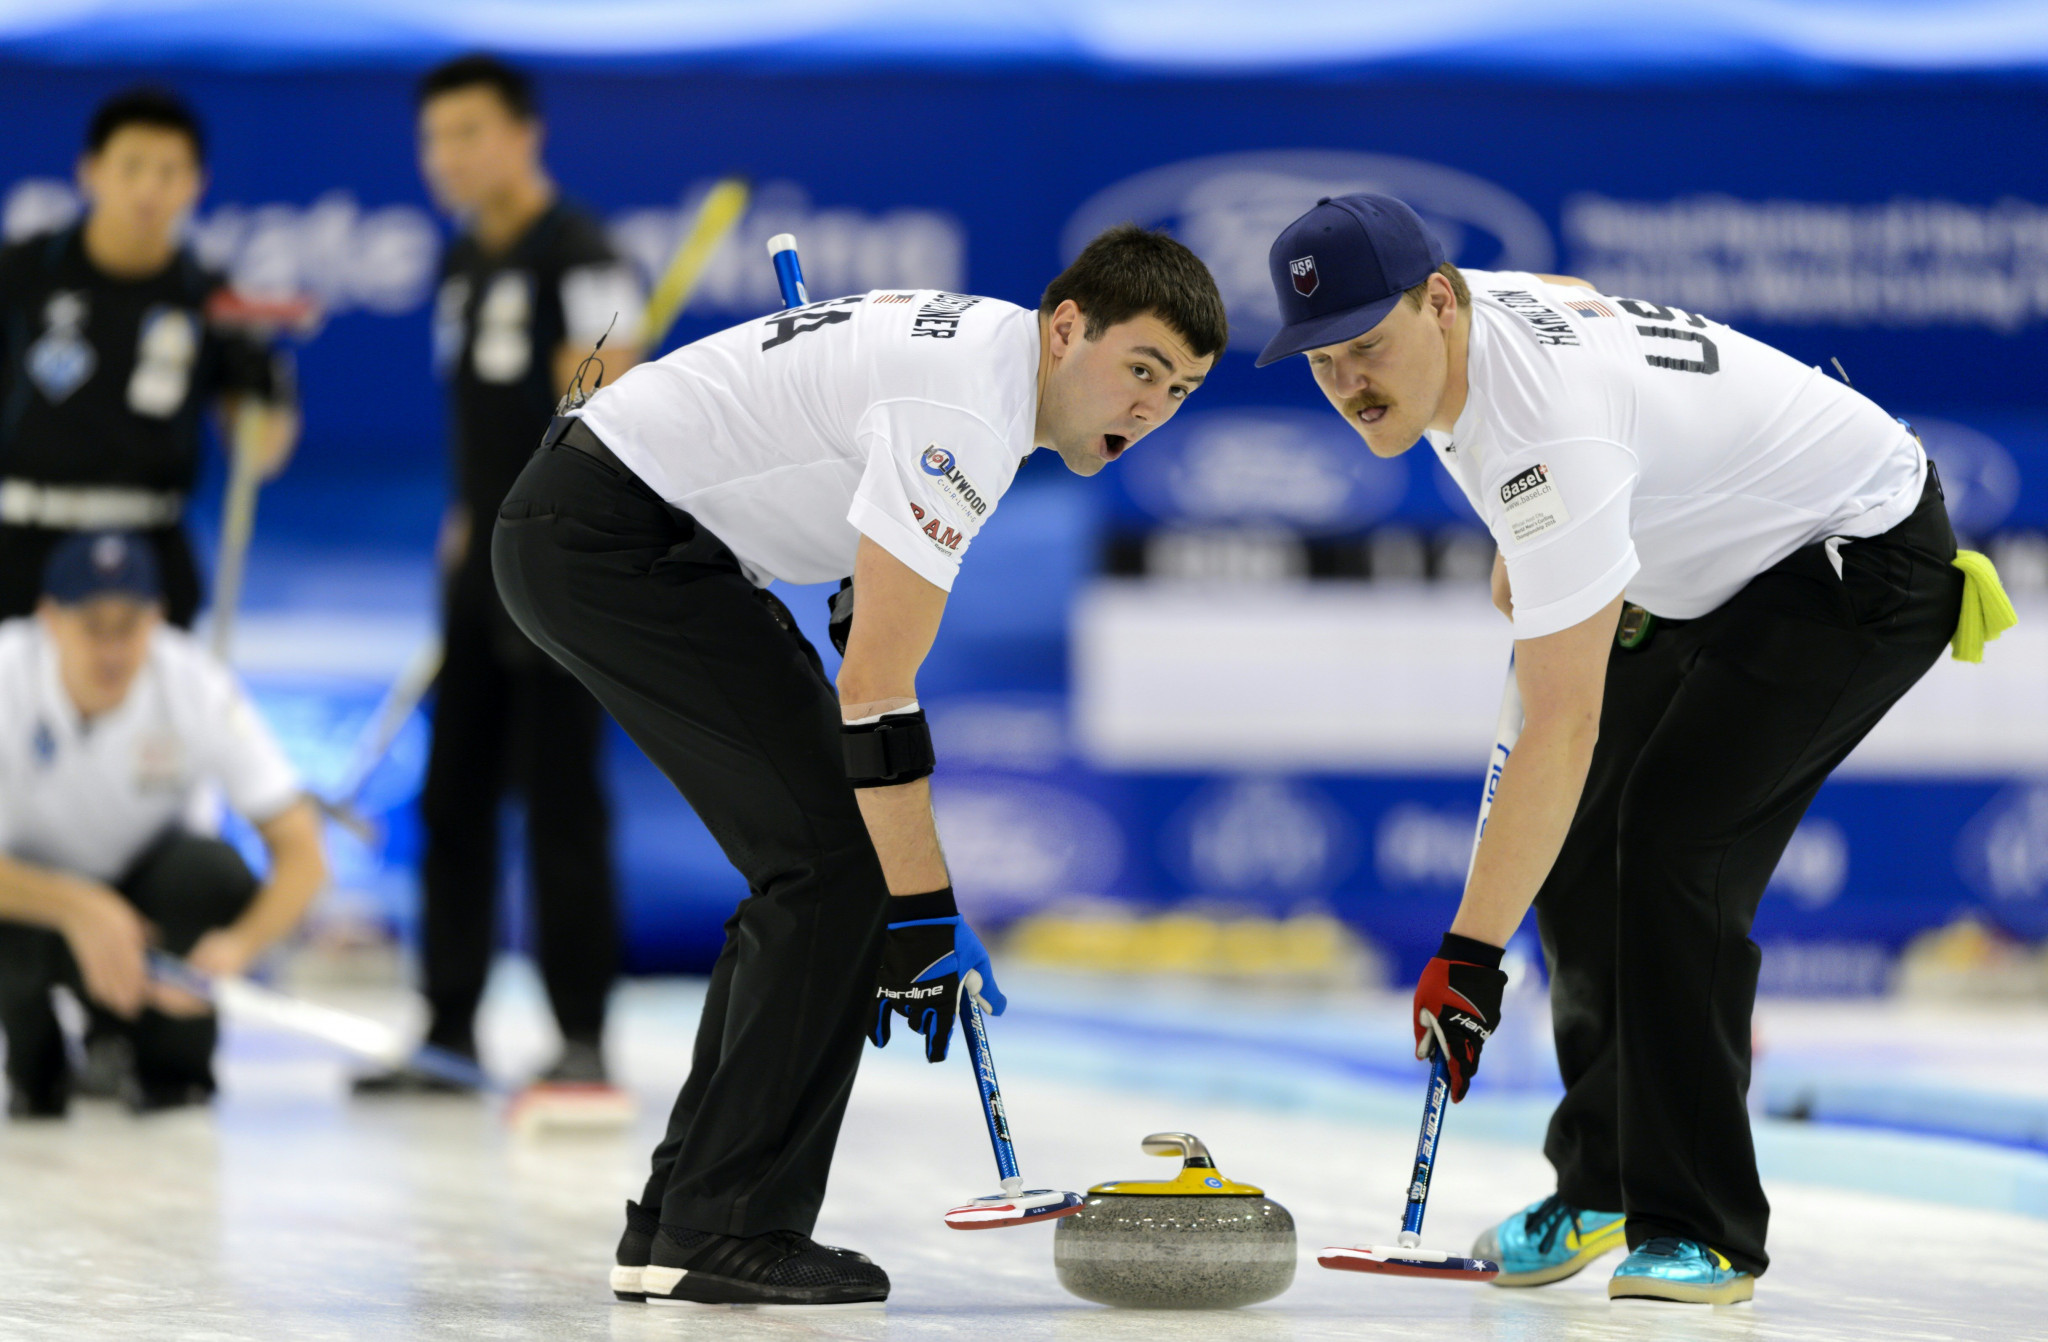 The United States has won the World Men's Curling Championship four times with their last victory coming in 1978 ©Getty Images